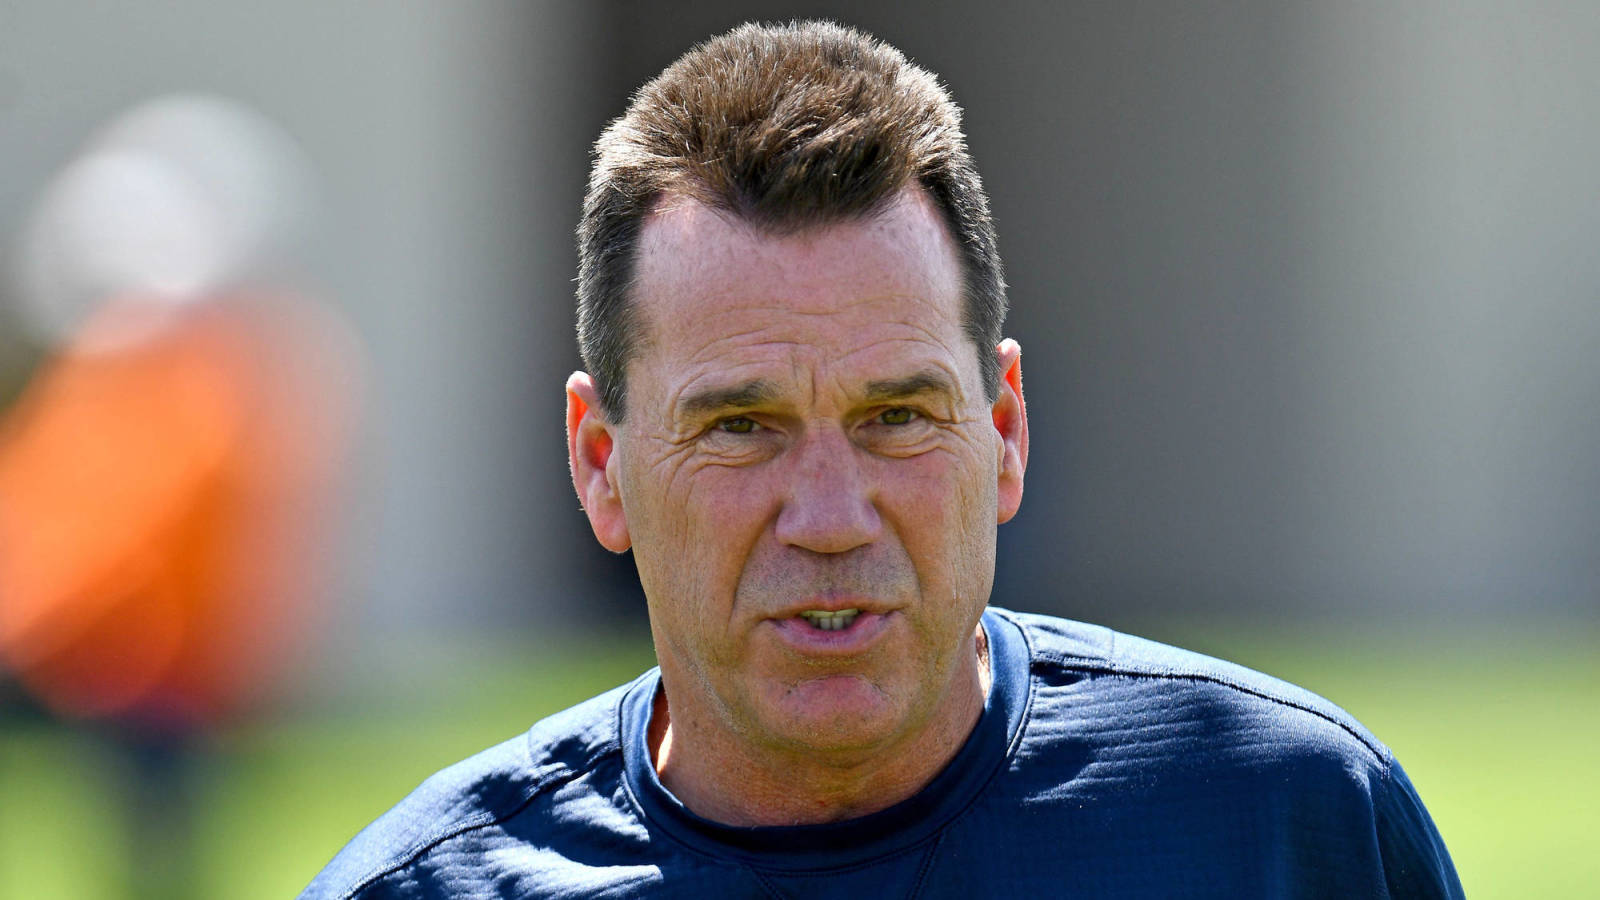 Kubiak accepted Vikings job because he wanted to call plays again